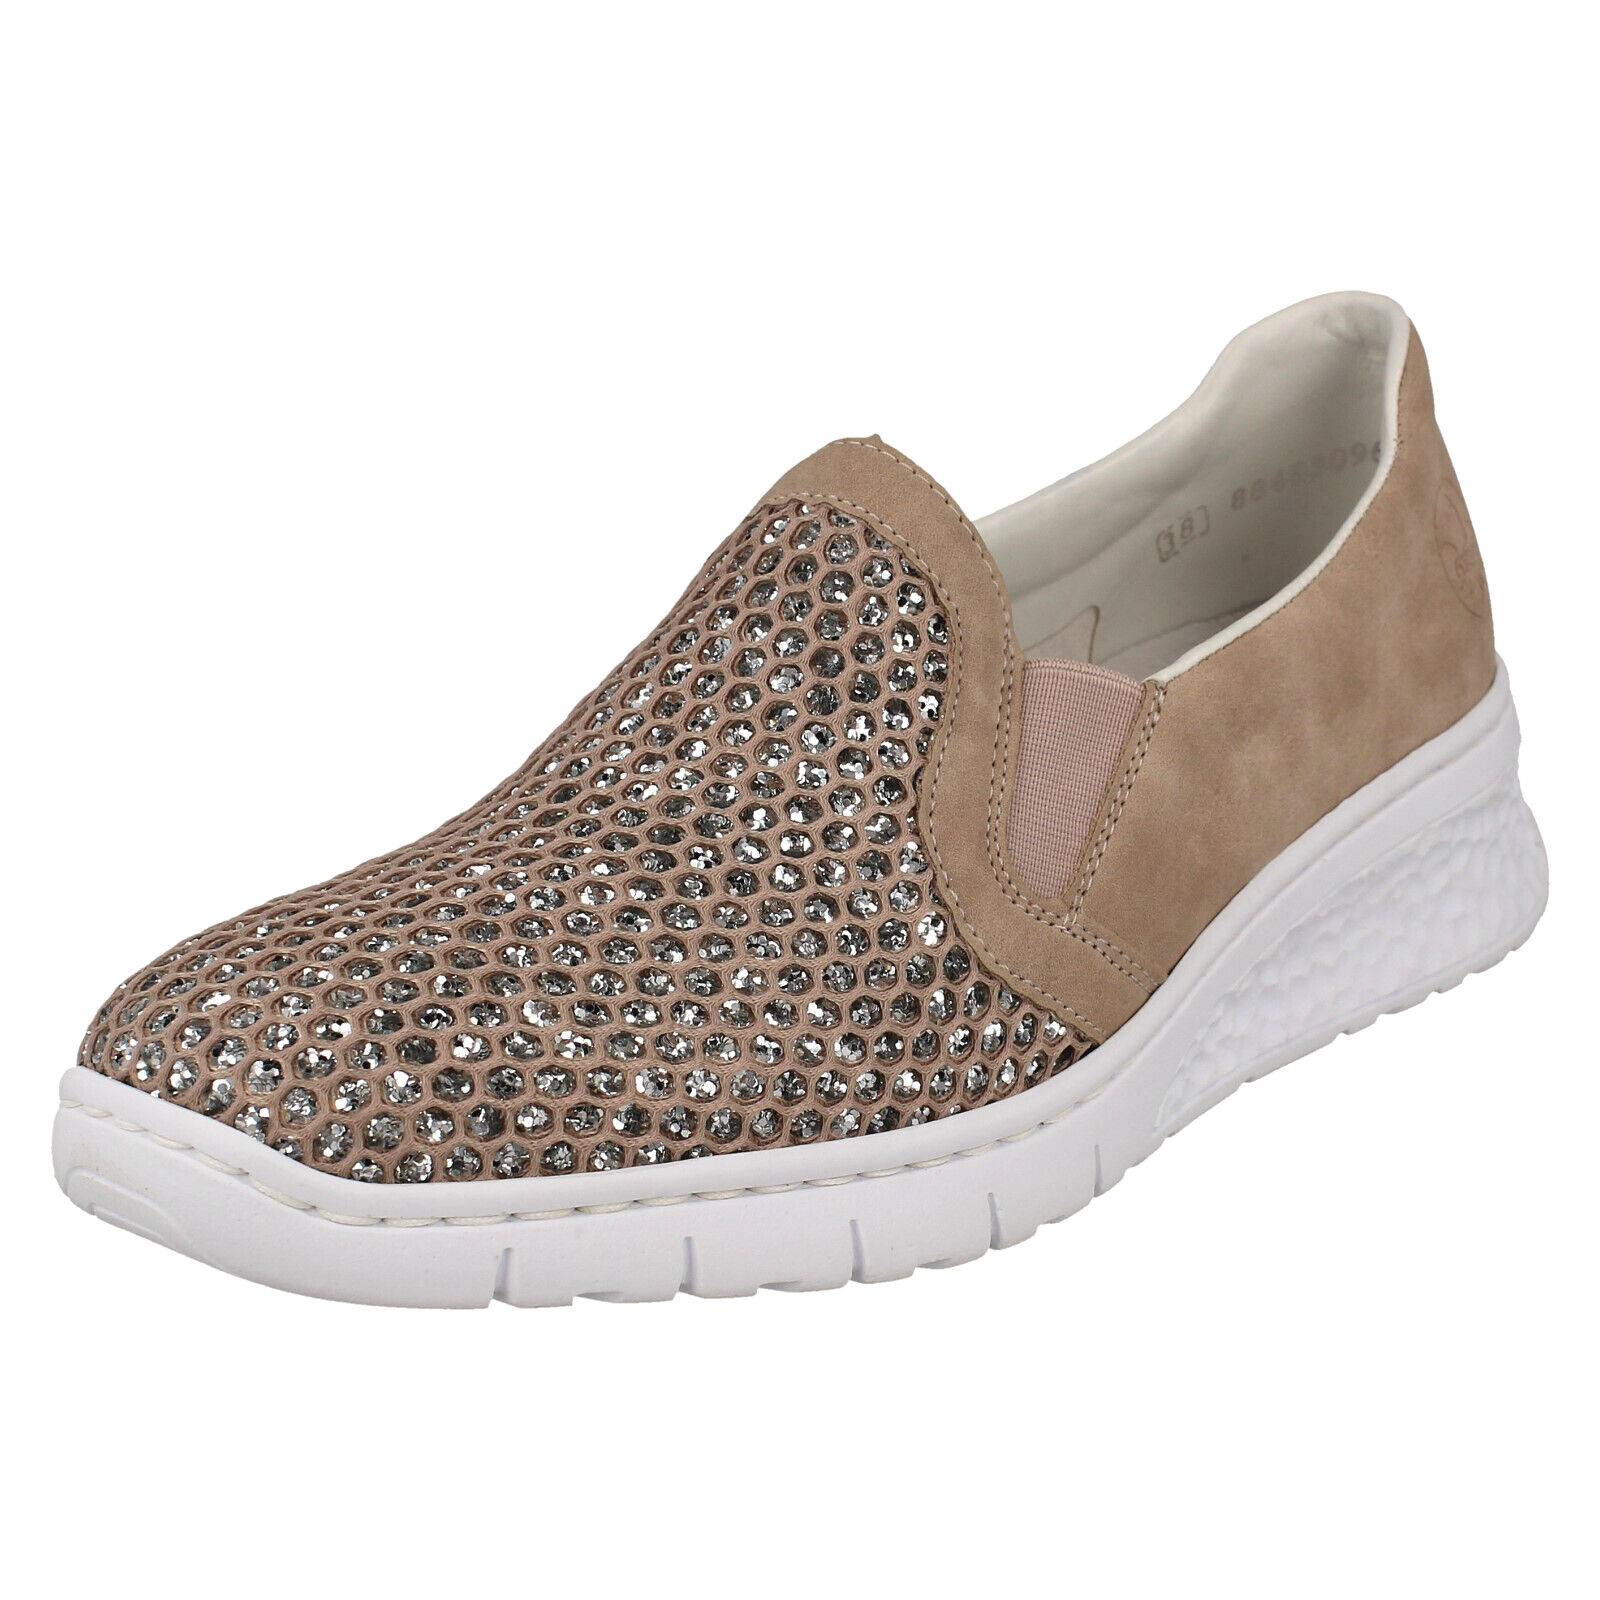 LADIES RIEKER 581T4 CASUAL SLIP ON WEDGE HEEL GLITTER PUMPS LOAFERS SHOES SIZE